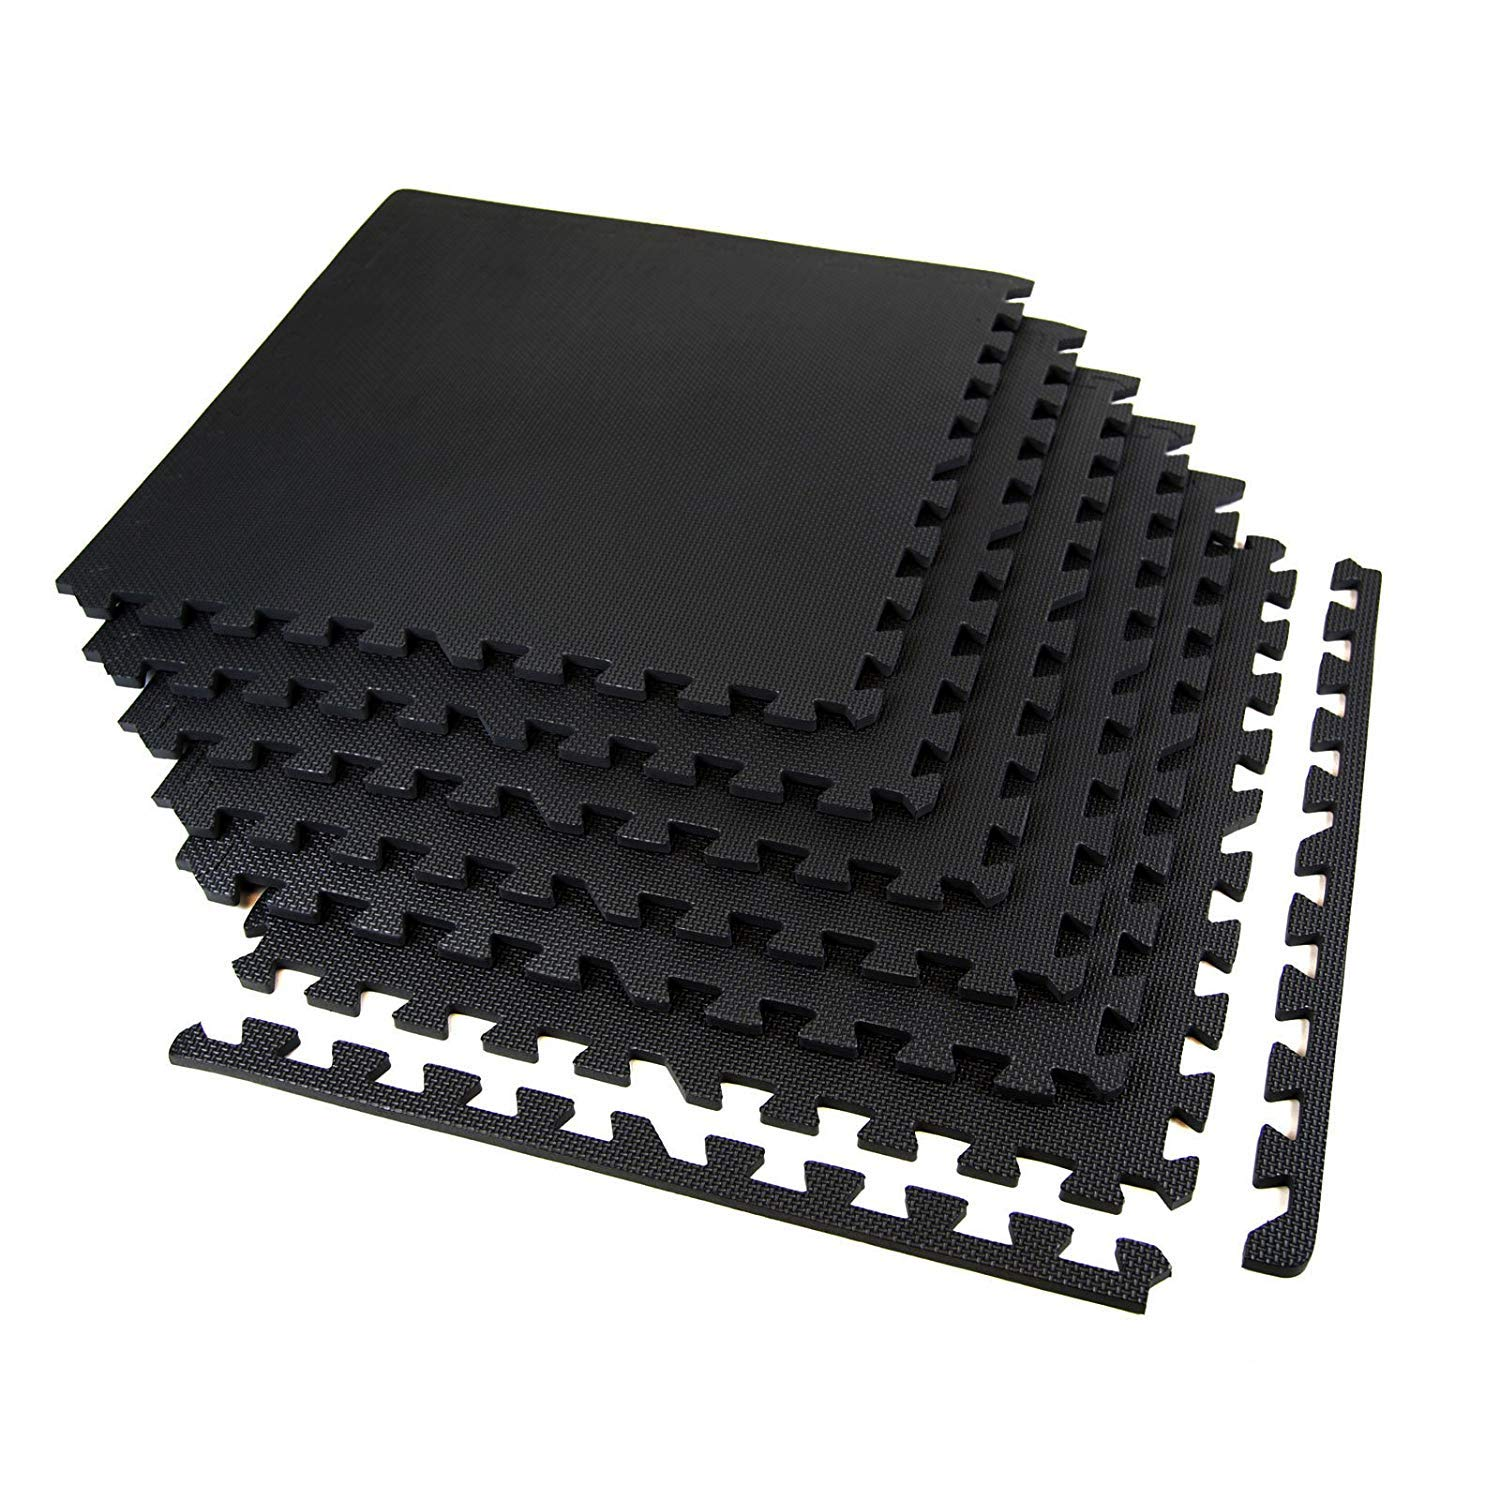 IncStores Eco Soft+ Foam Tiles (45 Tiles, Black) Interlocking Foam Flooring Mats with Removable Edges by IncStores (Image #3)